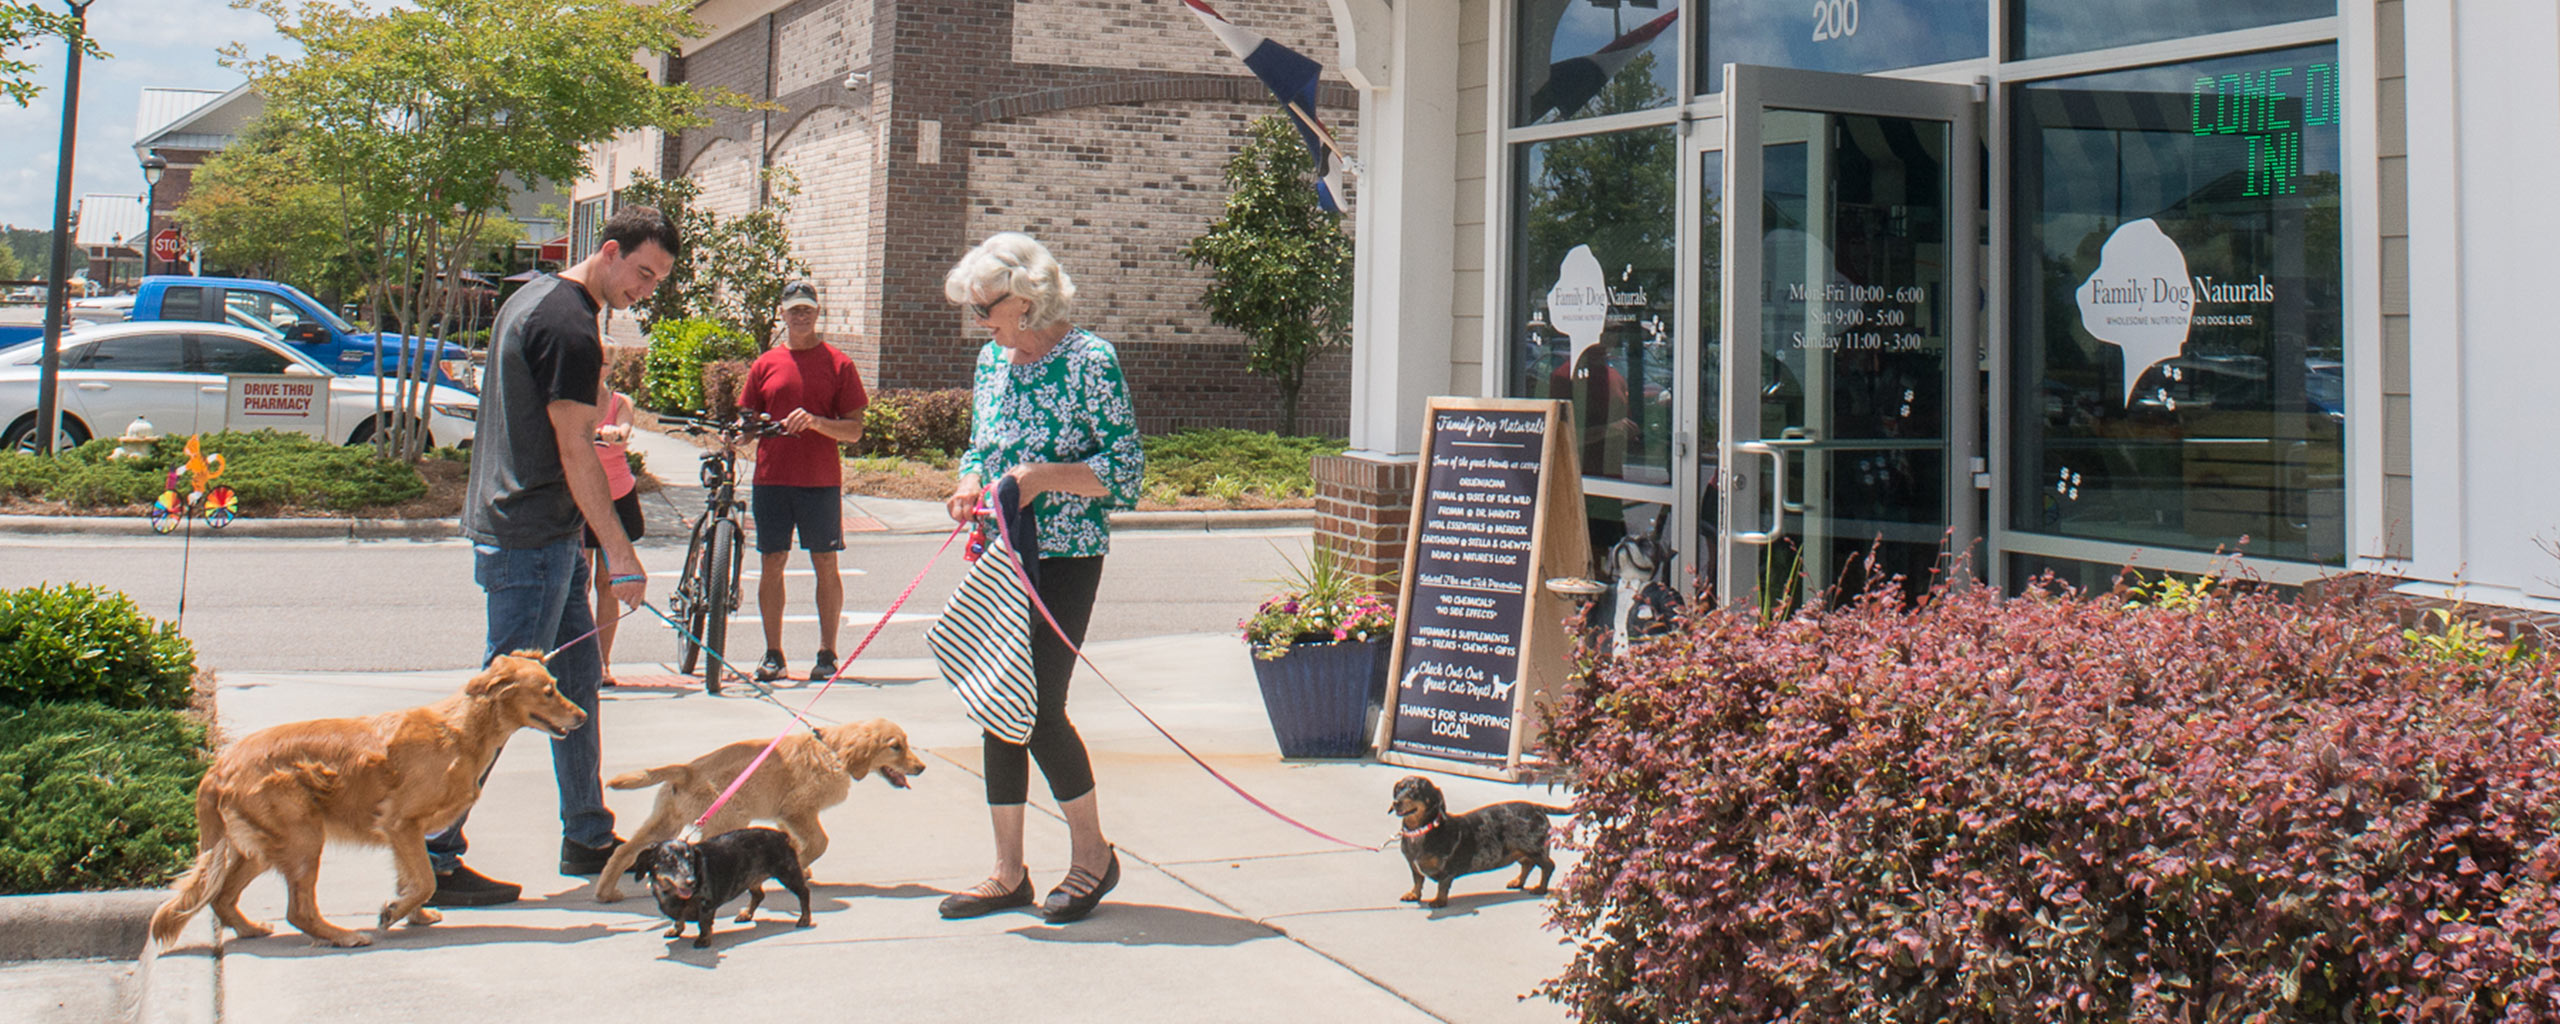 Dogs and their owners outside of Family Dog Naturals